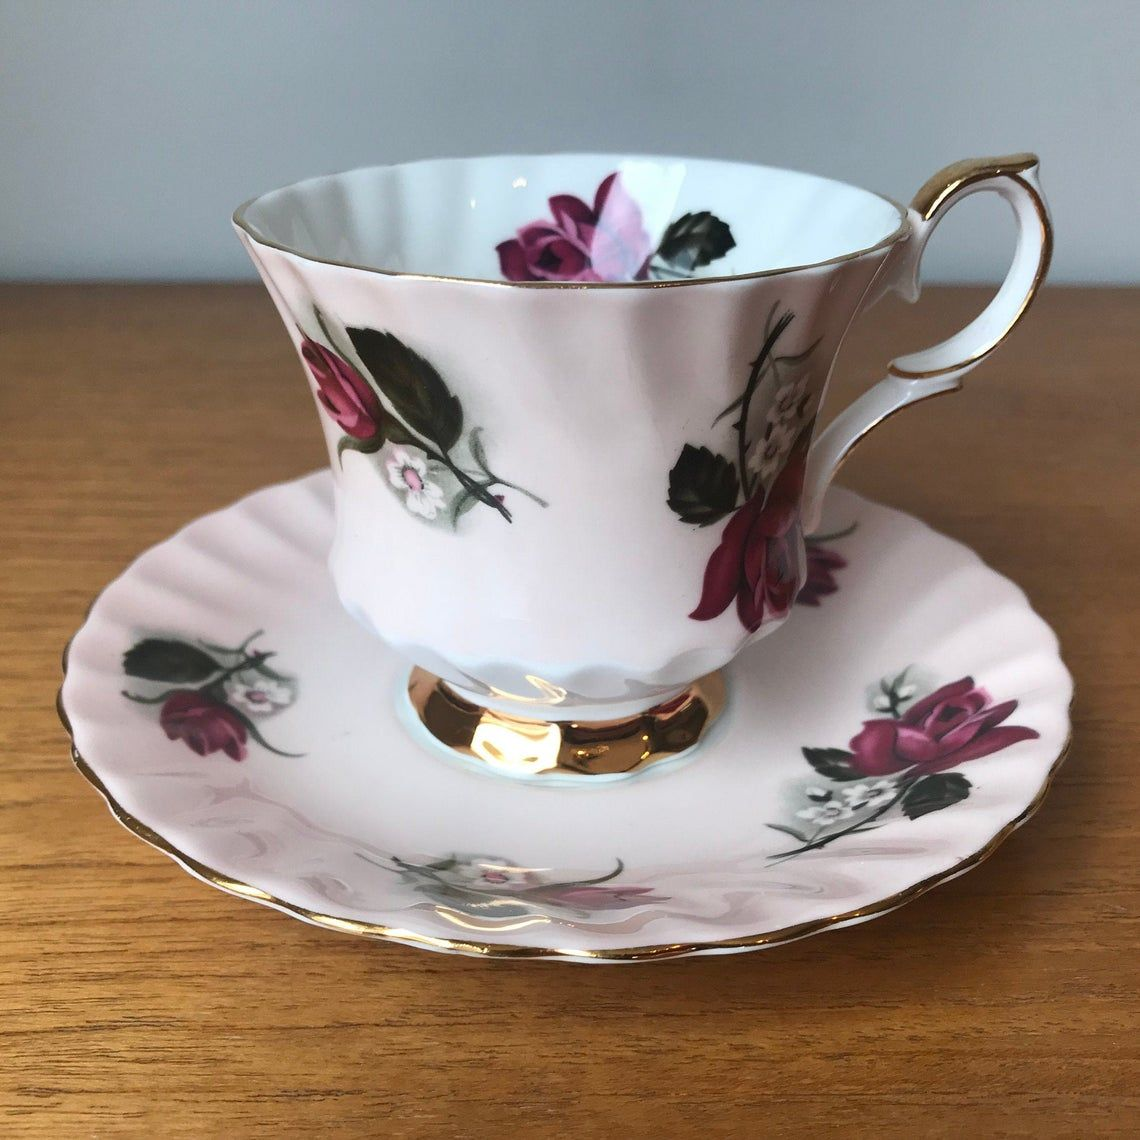 English China Pink Tea Cup and Saucer, Queen Anne Rose Teacup and Saucer